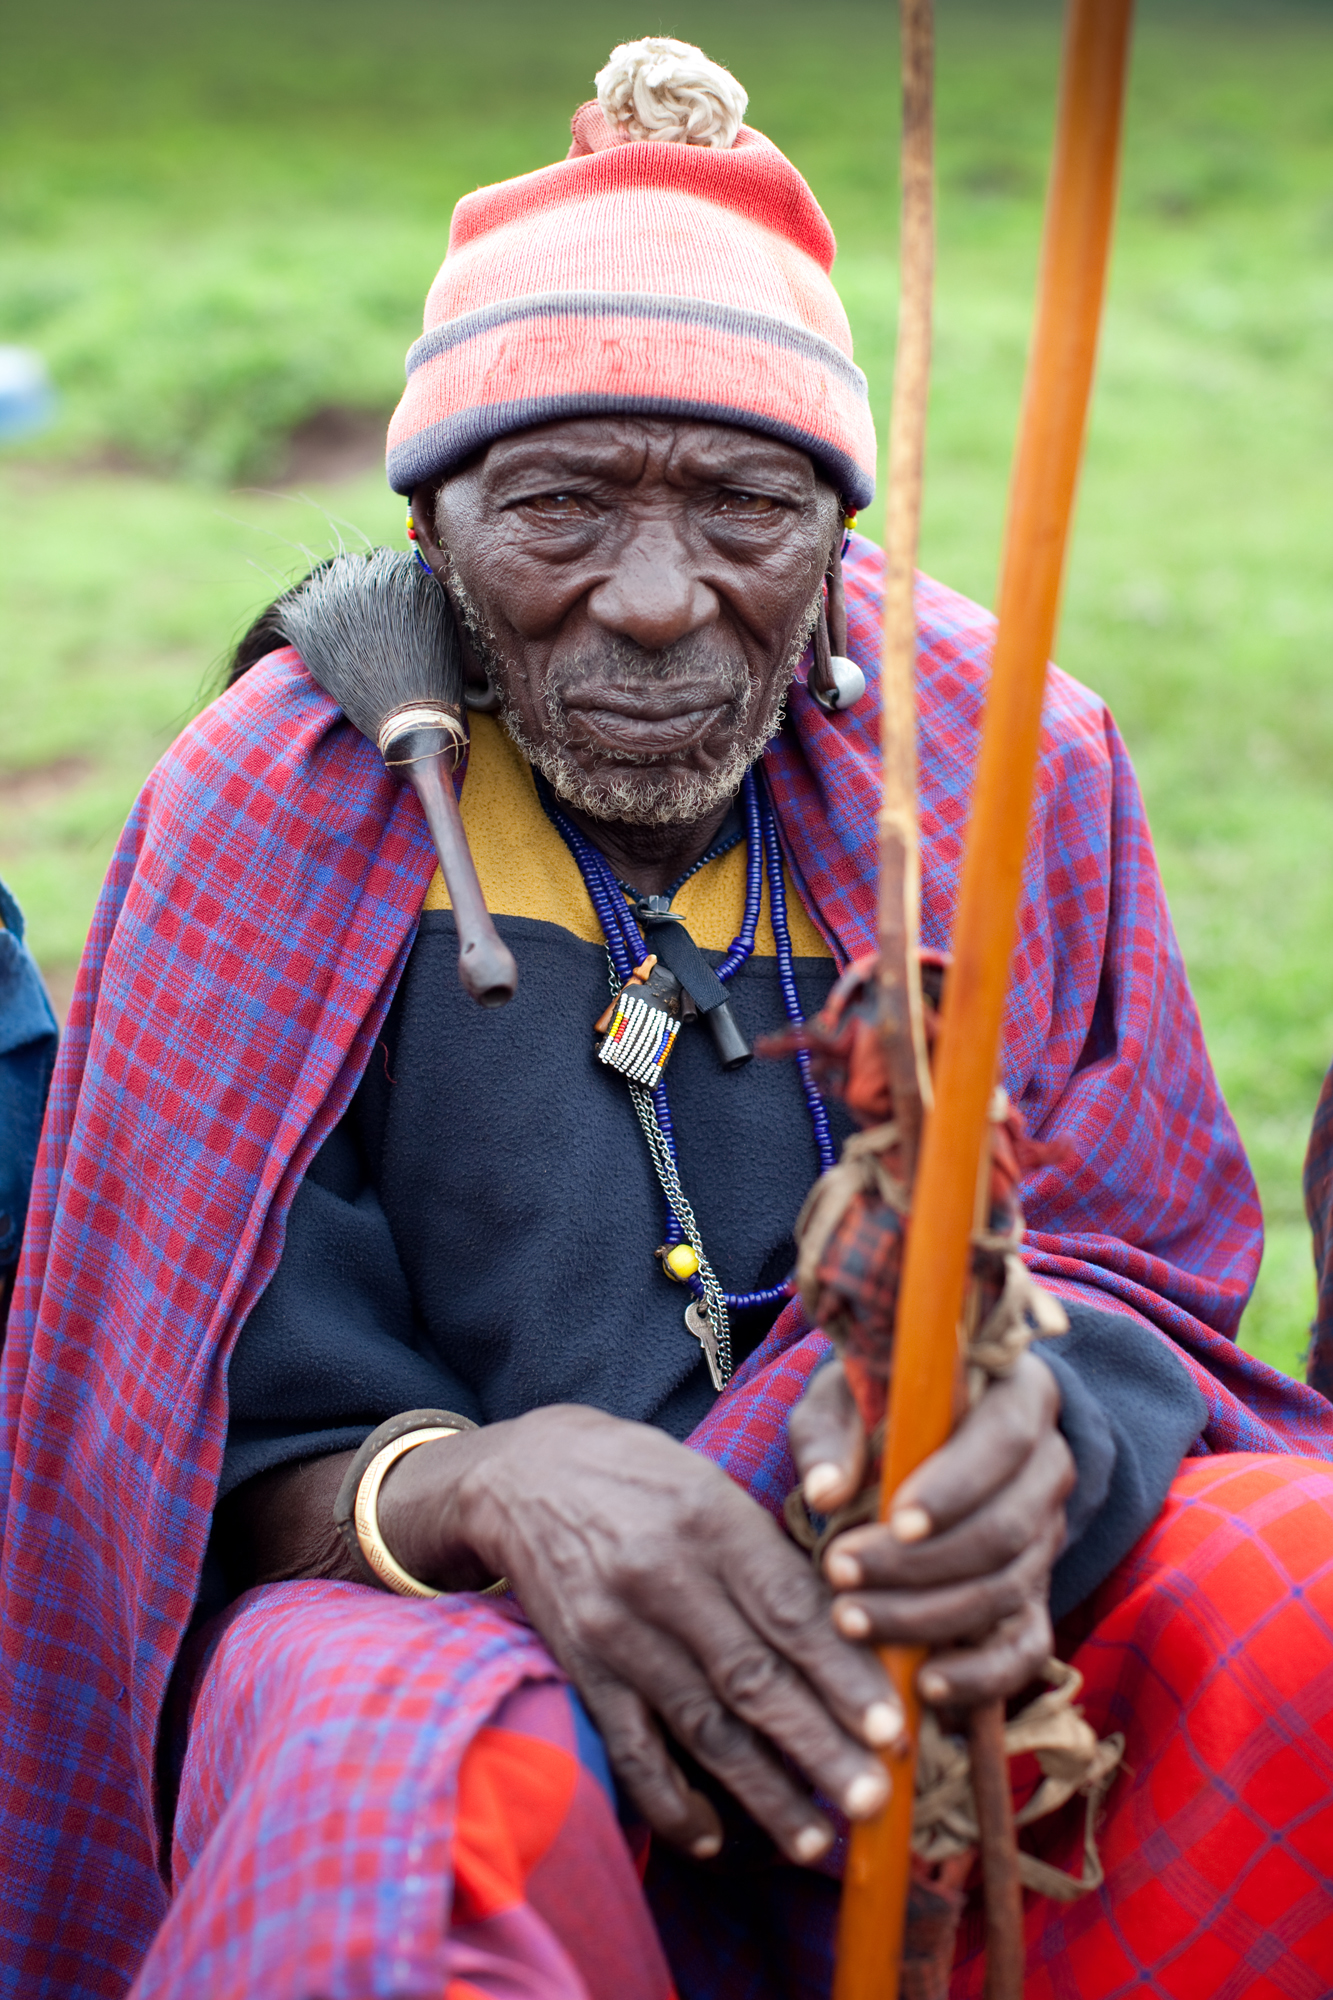 Maasai-chief-travel-photography-axelphoto.jpg